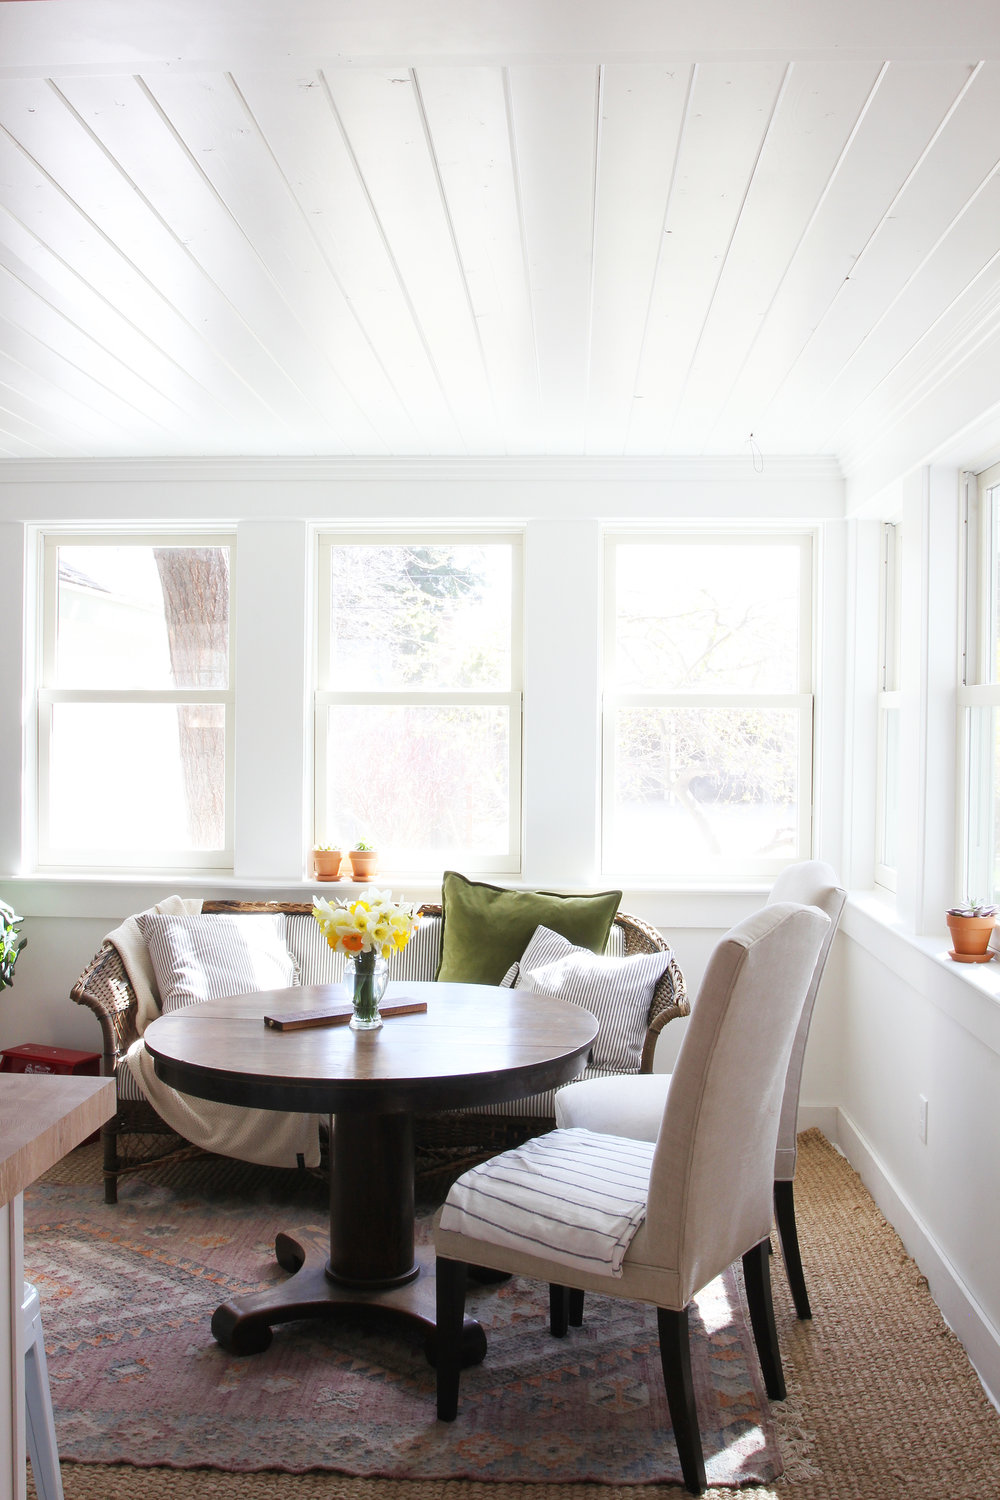 The Grit and Polish - Porch House Sunroom sun 4.jpg